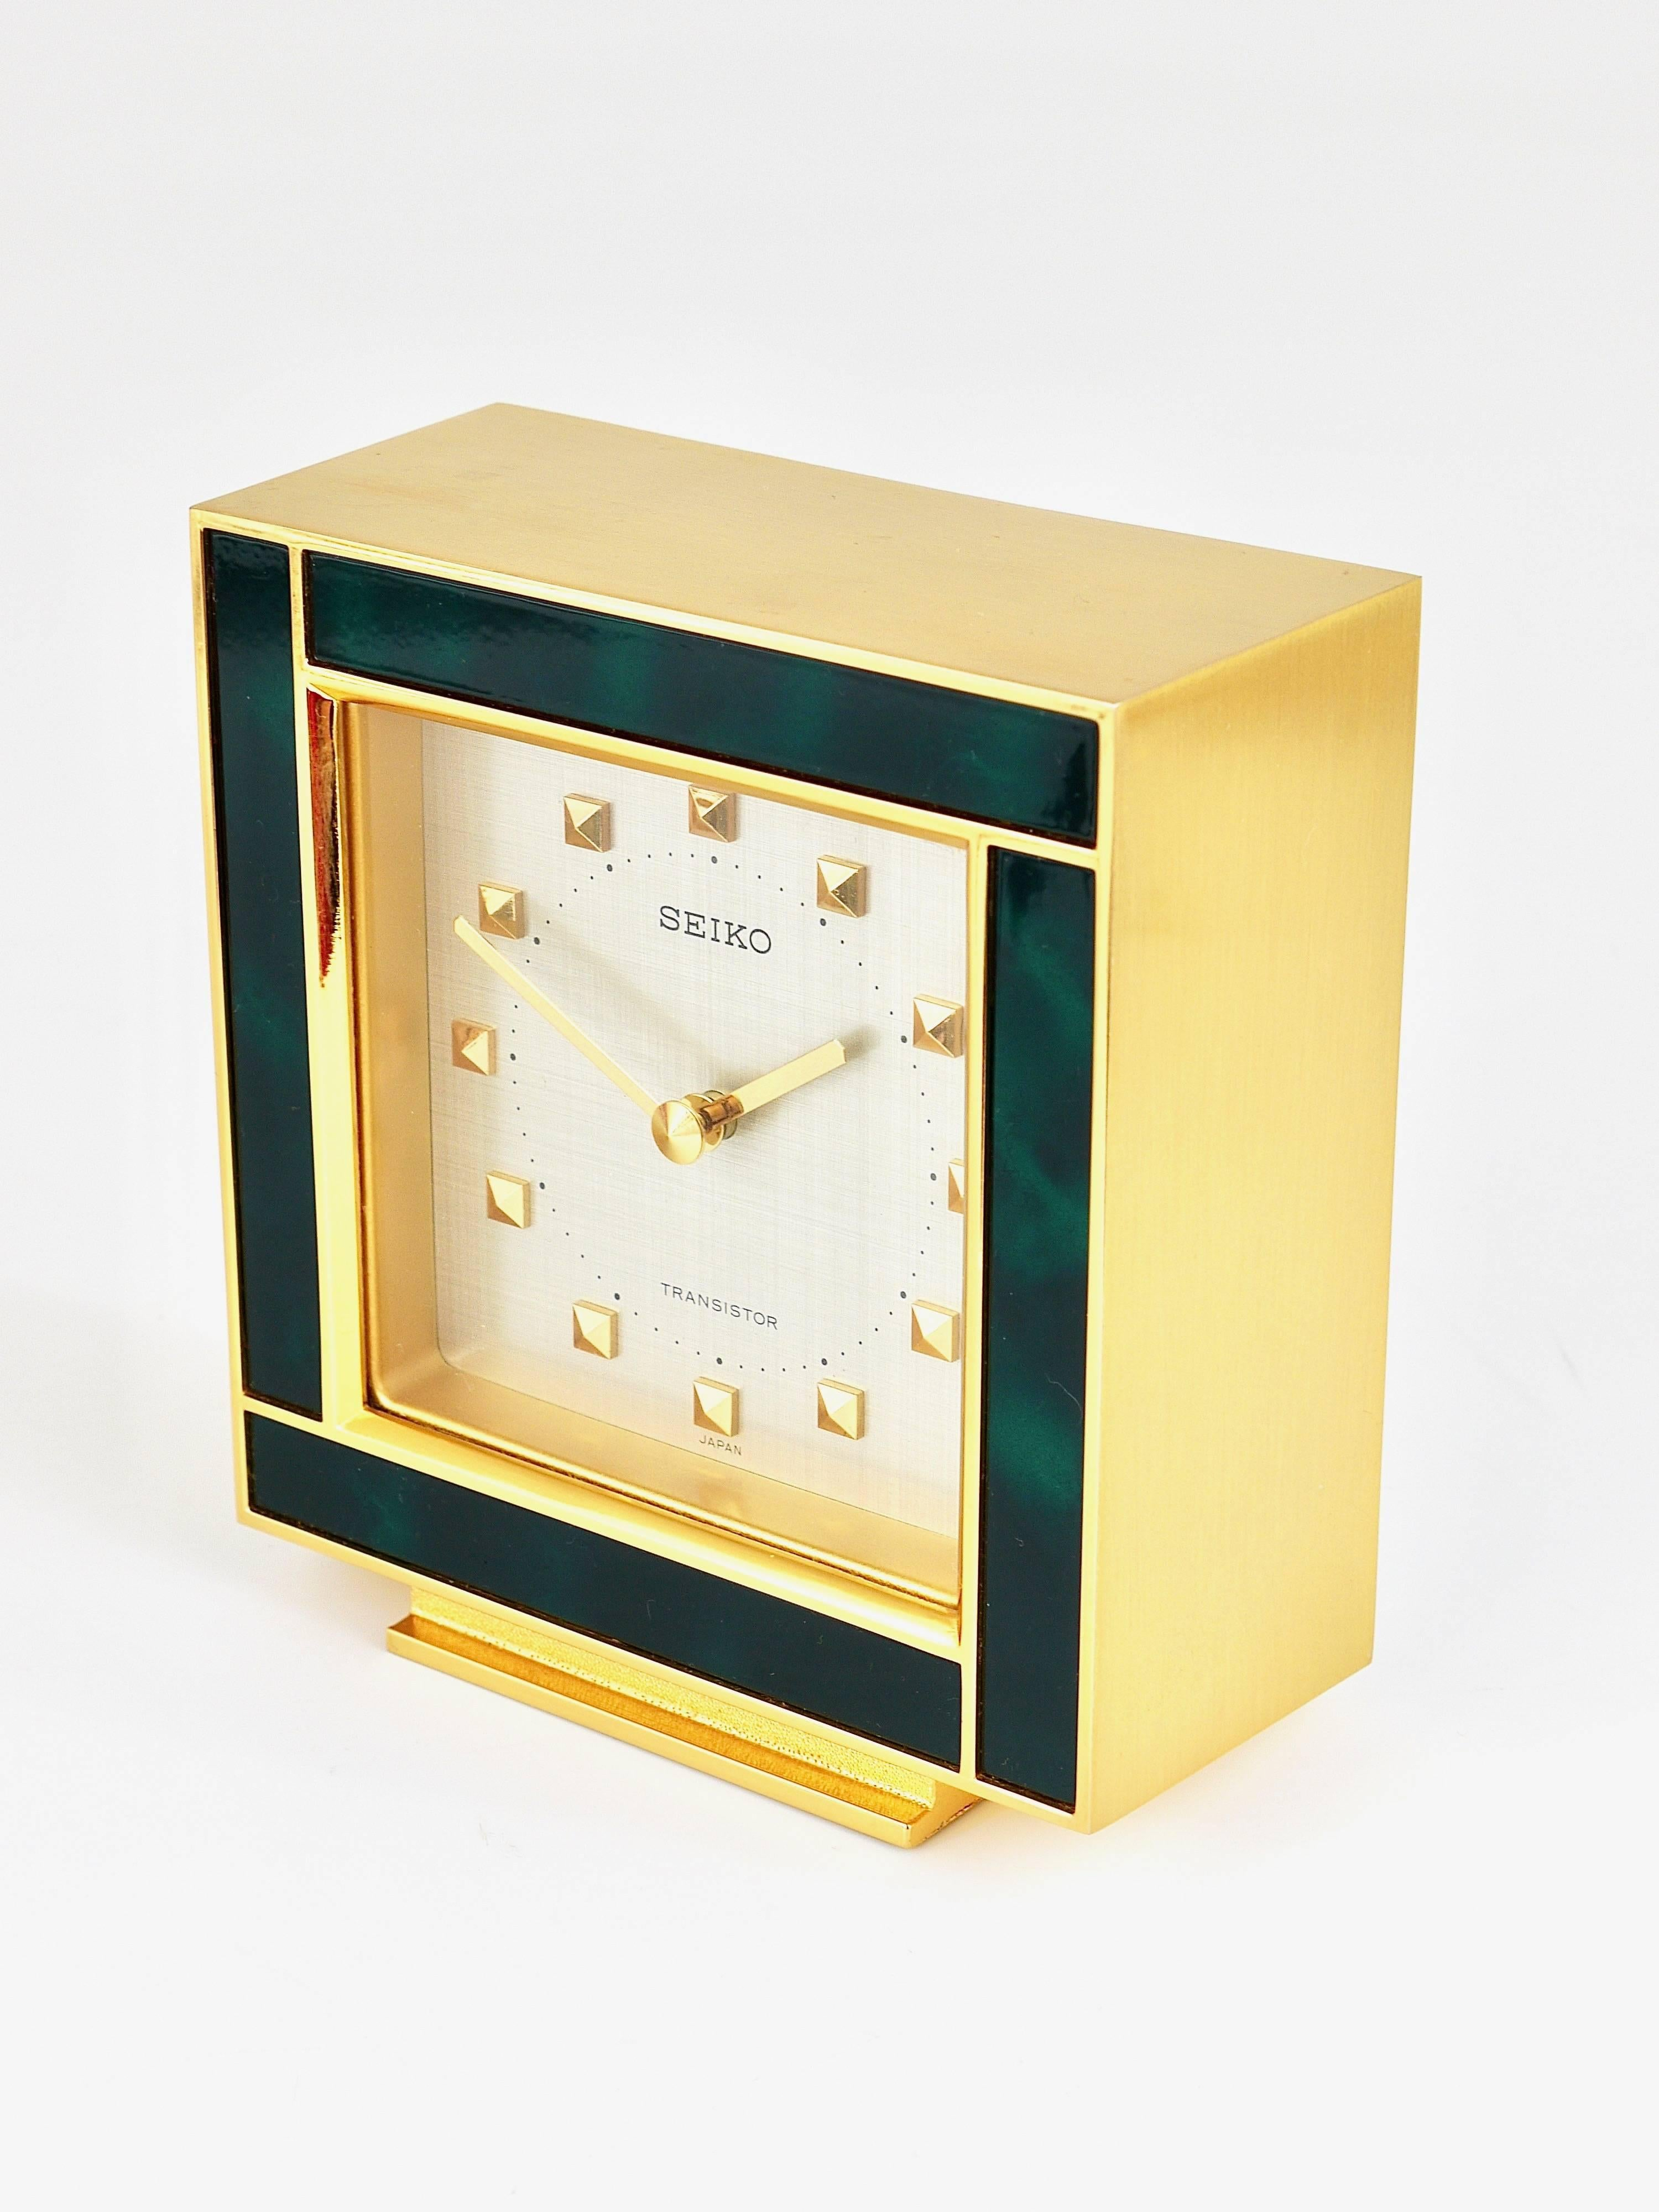 Beautiful Gold And Green Hollywood Regency Table Clock Seiko 1970s For At 1stdibs